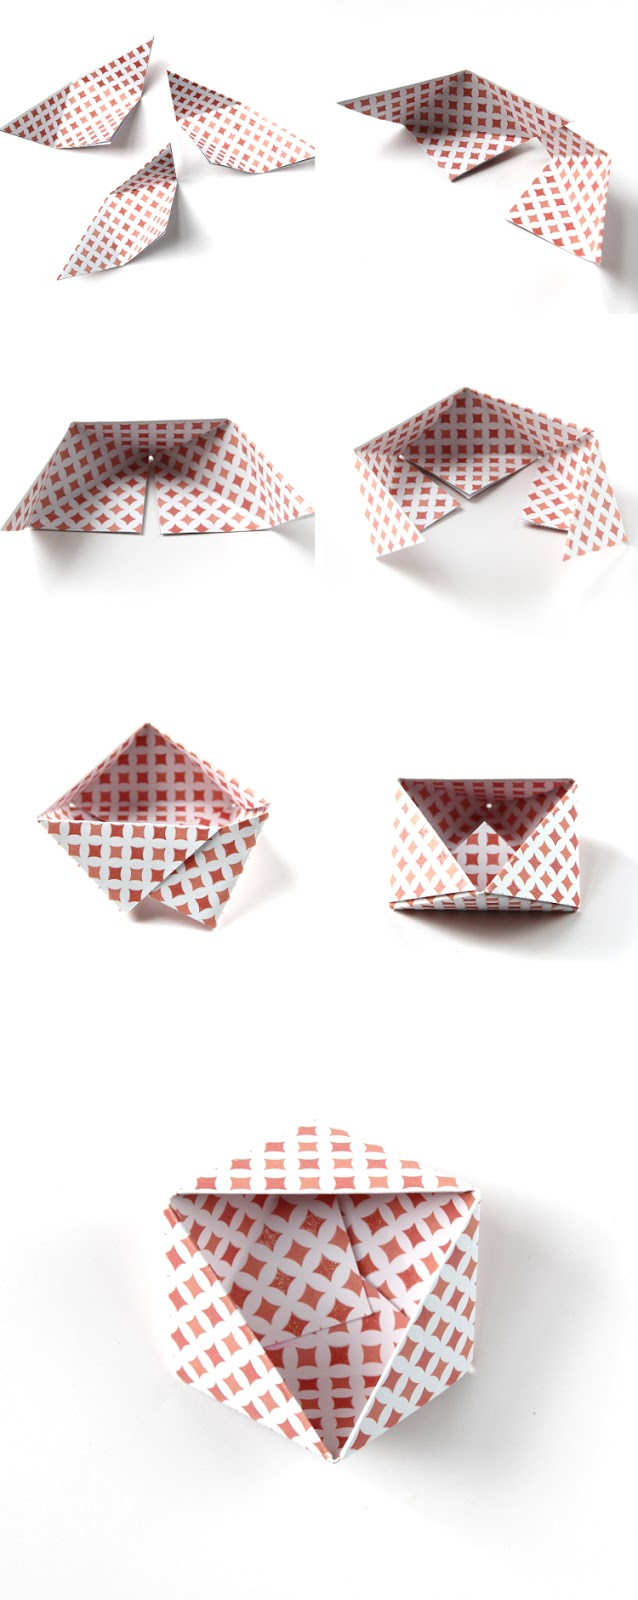 HOW TO MAKE DIY ORIGAMI GEOMETRIC TRIANGLE BOWLS